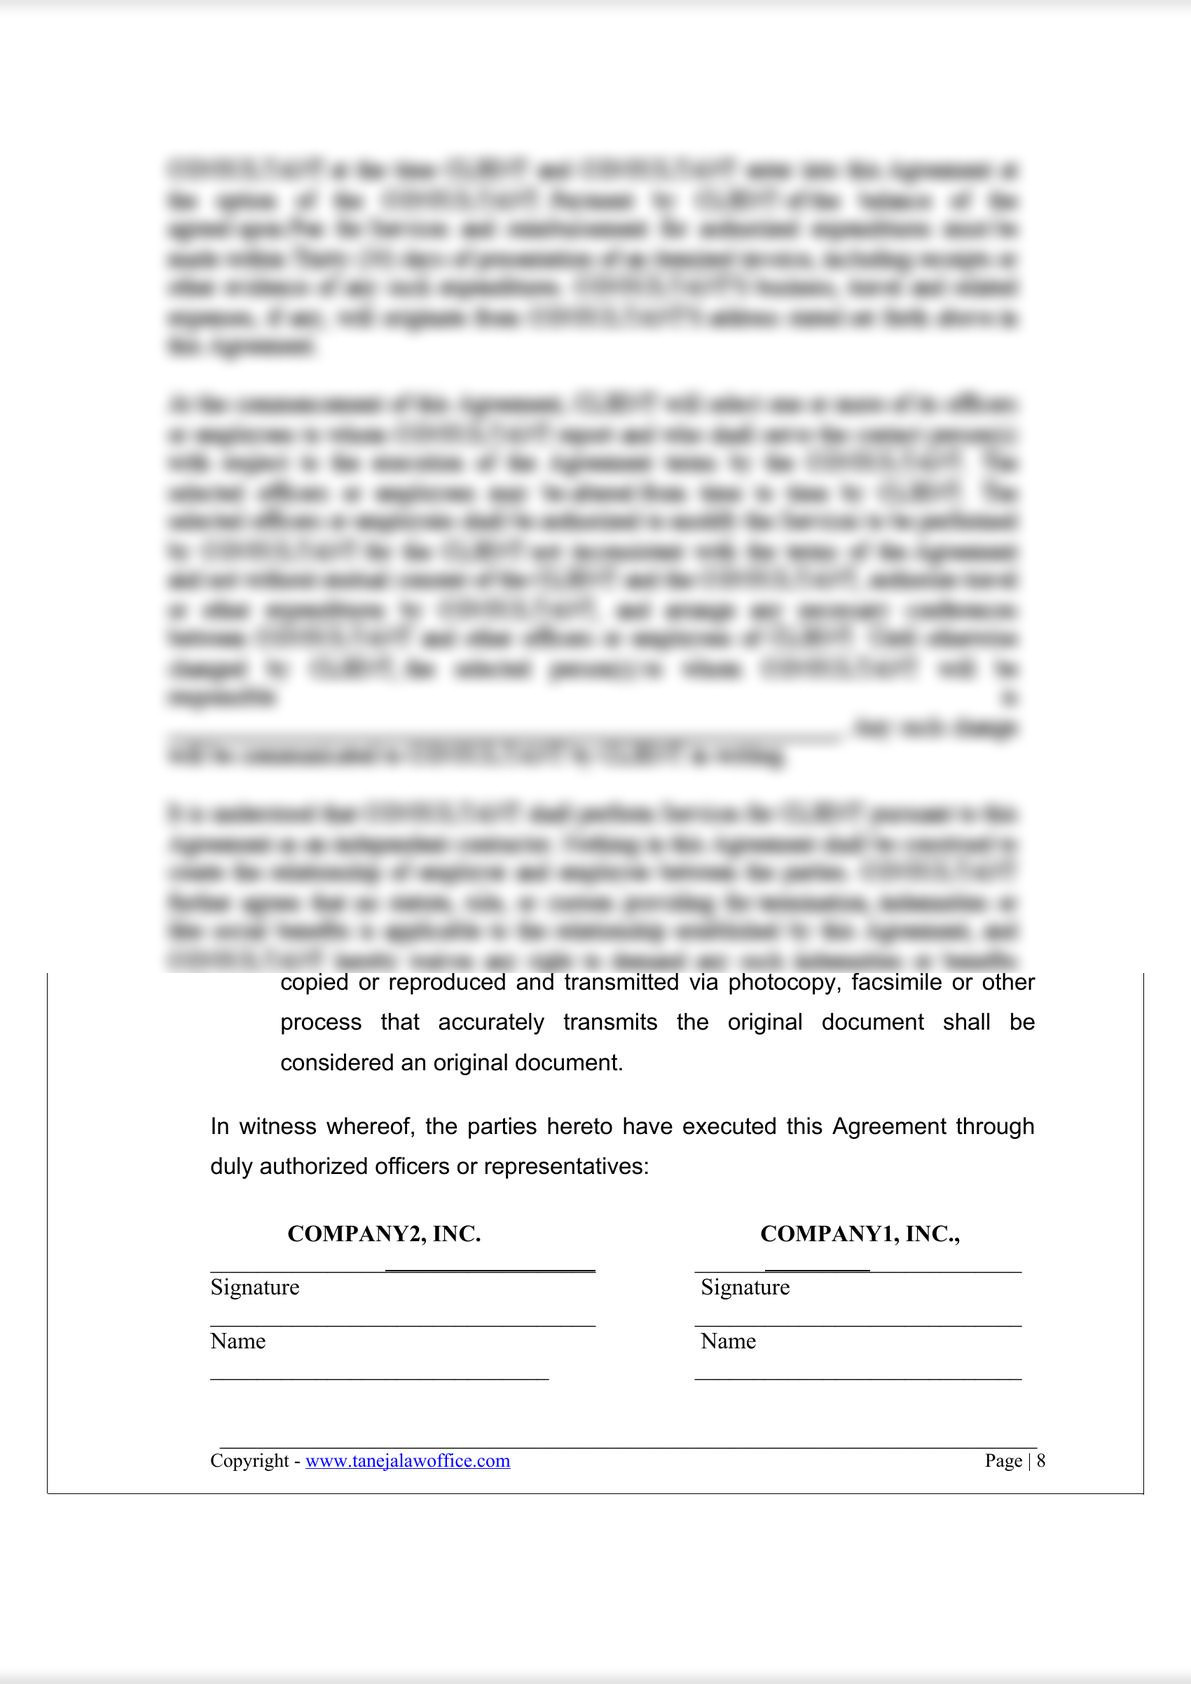 Mutual Non-Disclosure Agreement-4